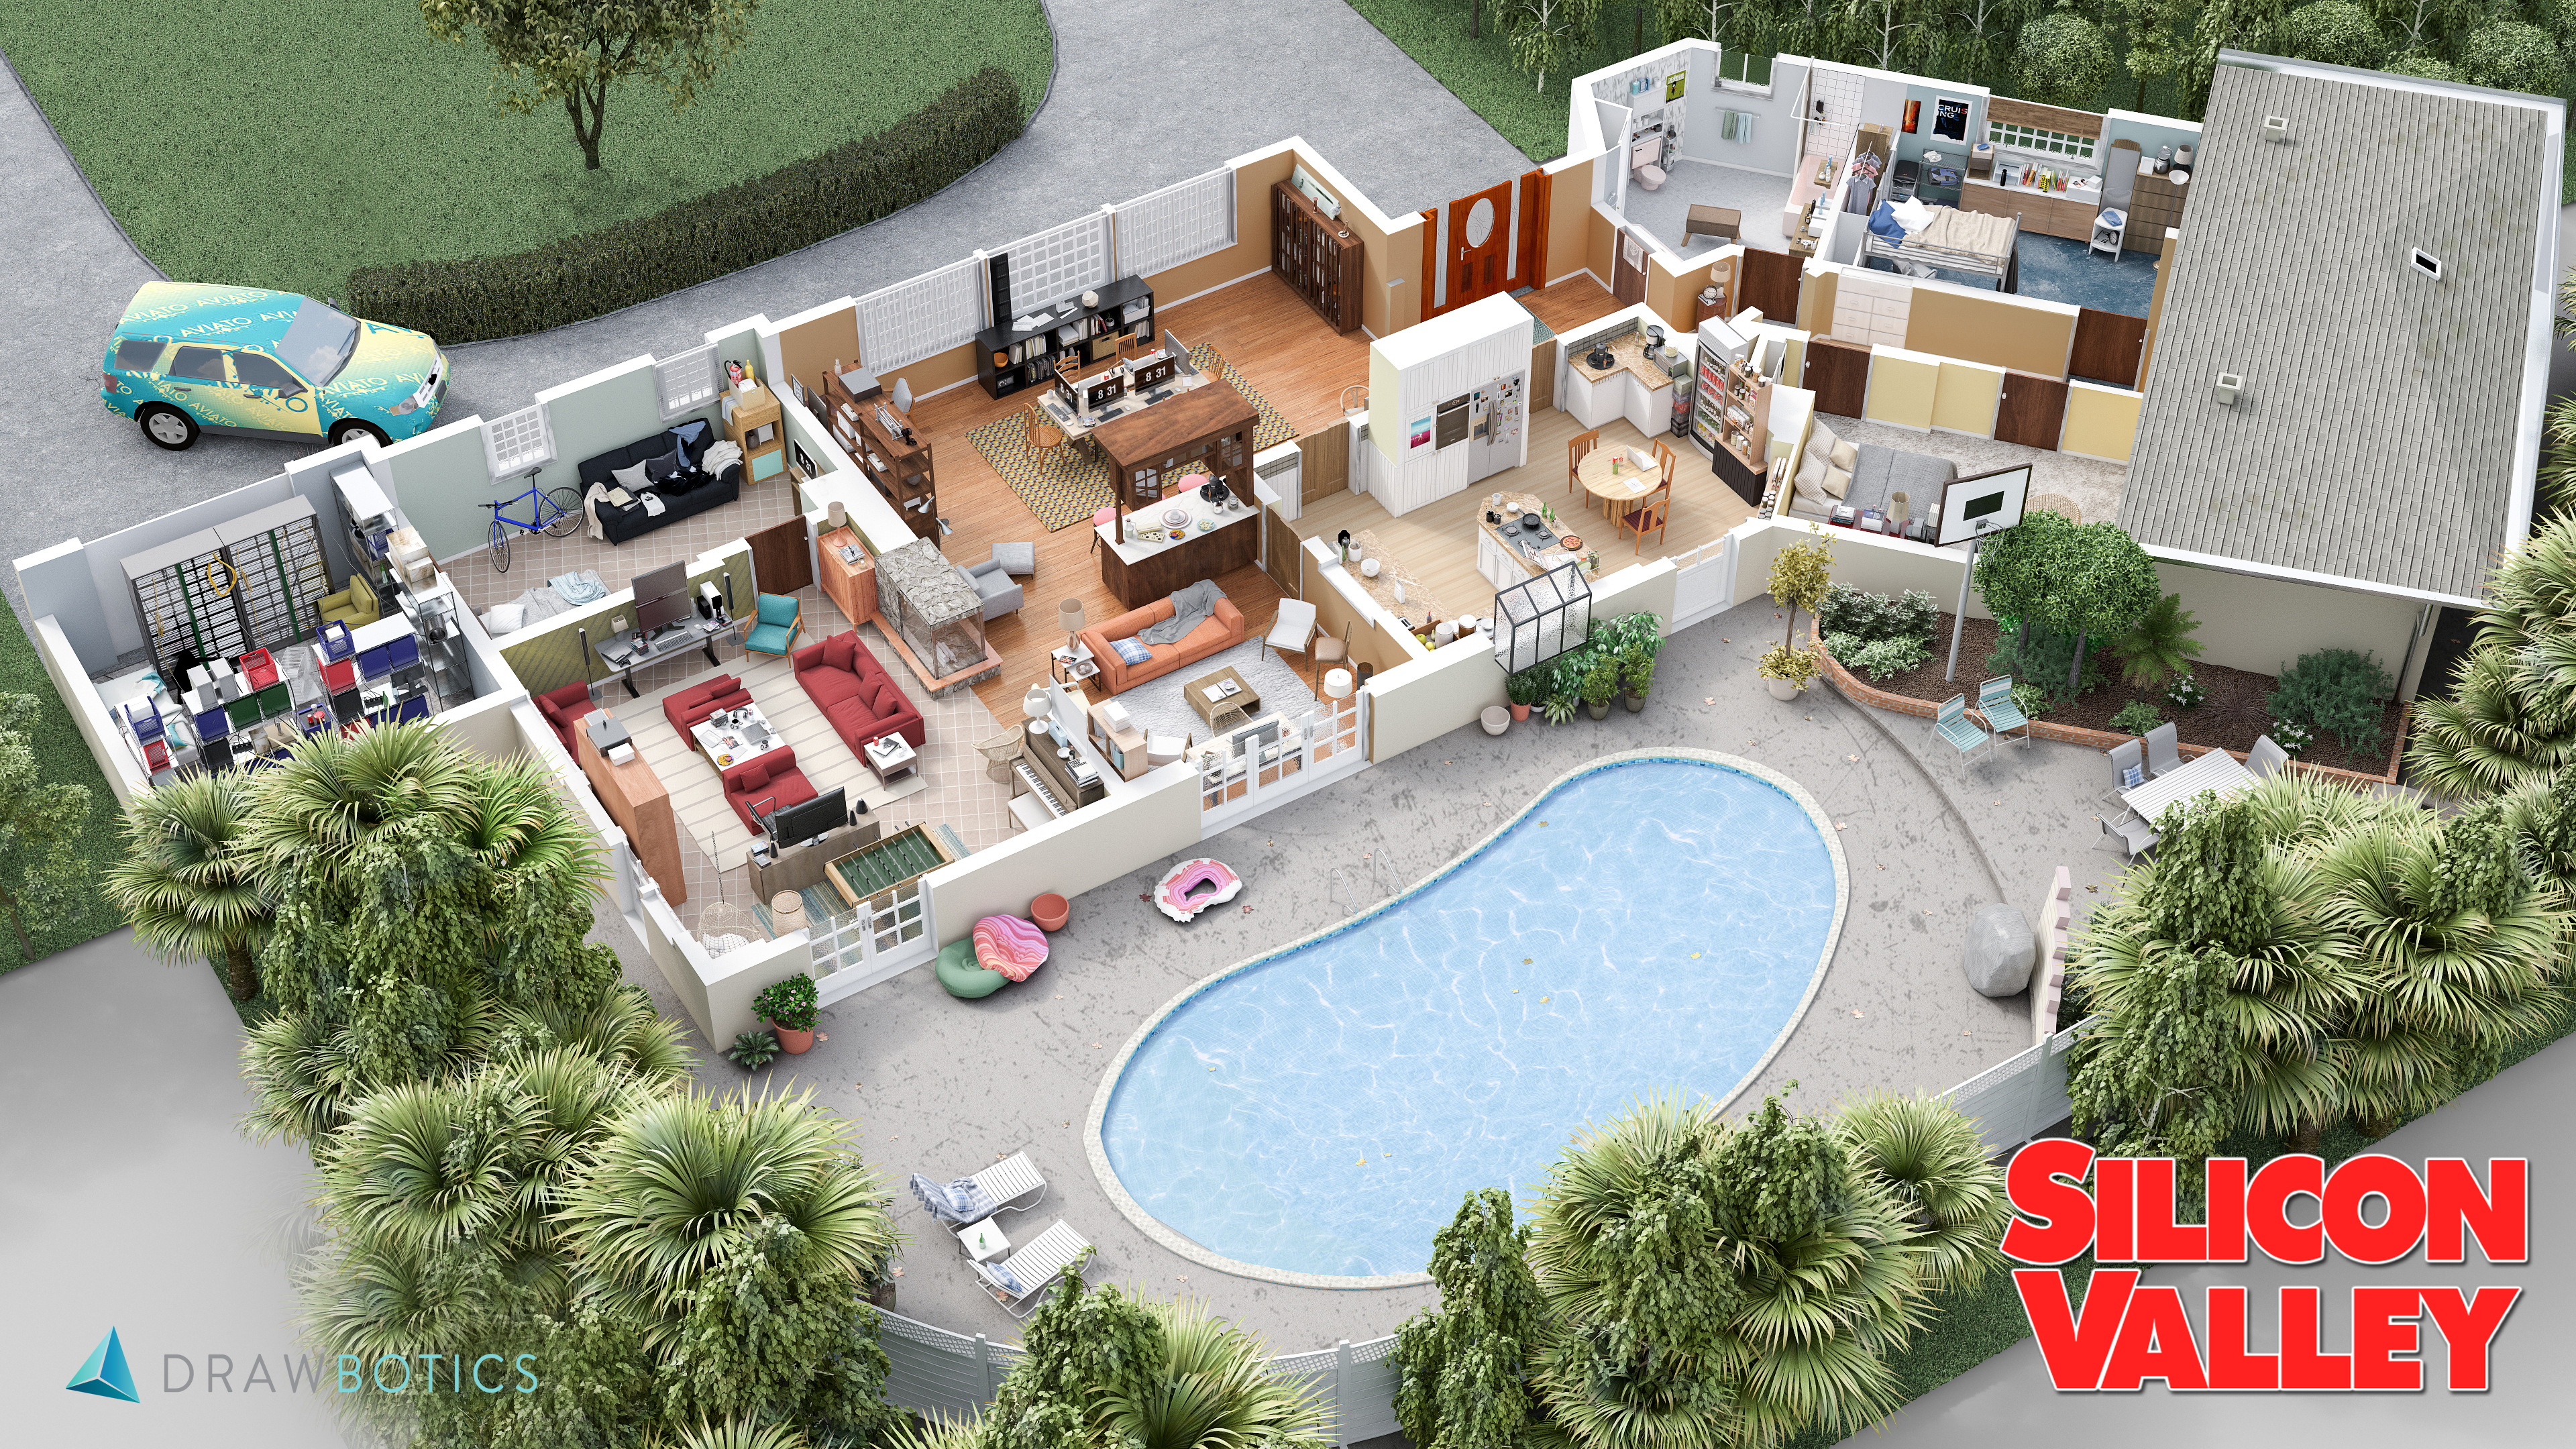 Garage Floor Plans With Apartments Famous Tv Shows Brought To Life With 3d Plans Drawbotics